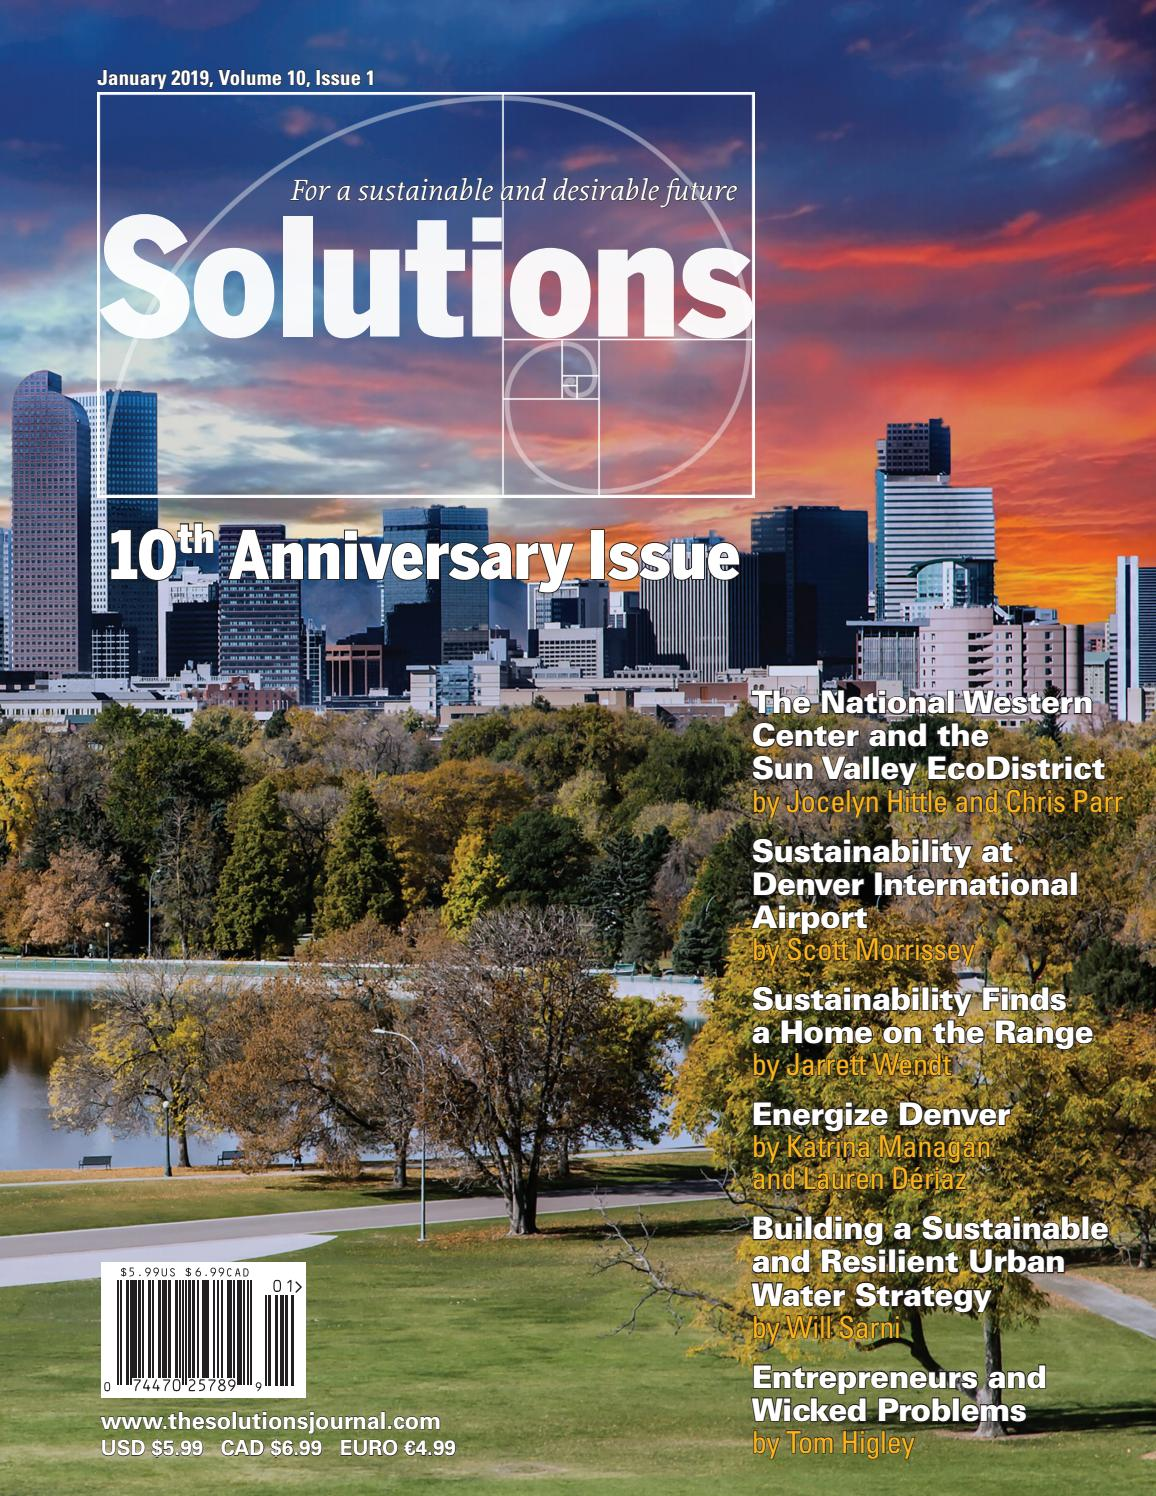 Solutions Volume 10 Issue 1 By The Solutions Journal Issuu